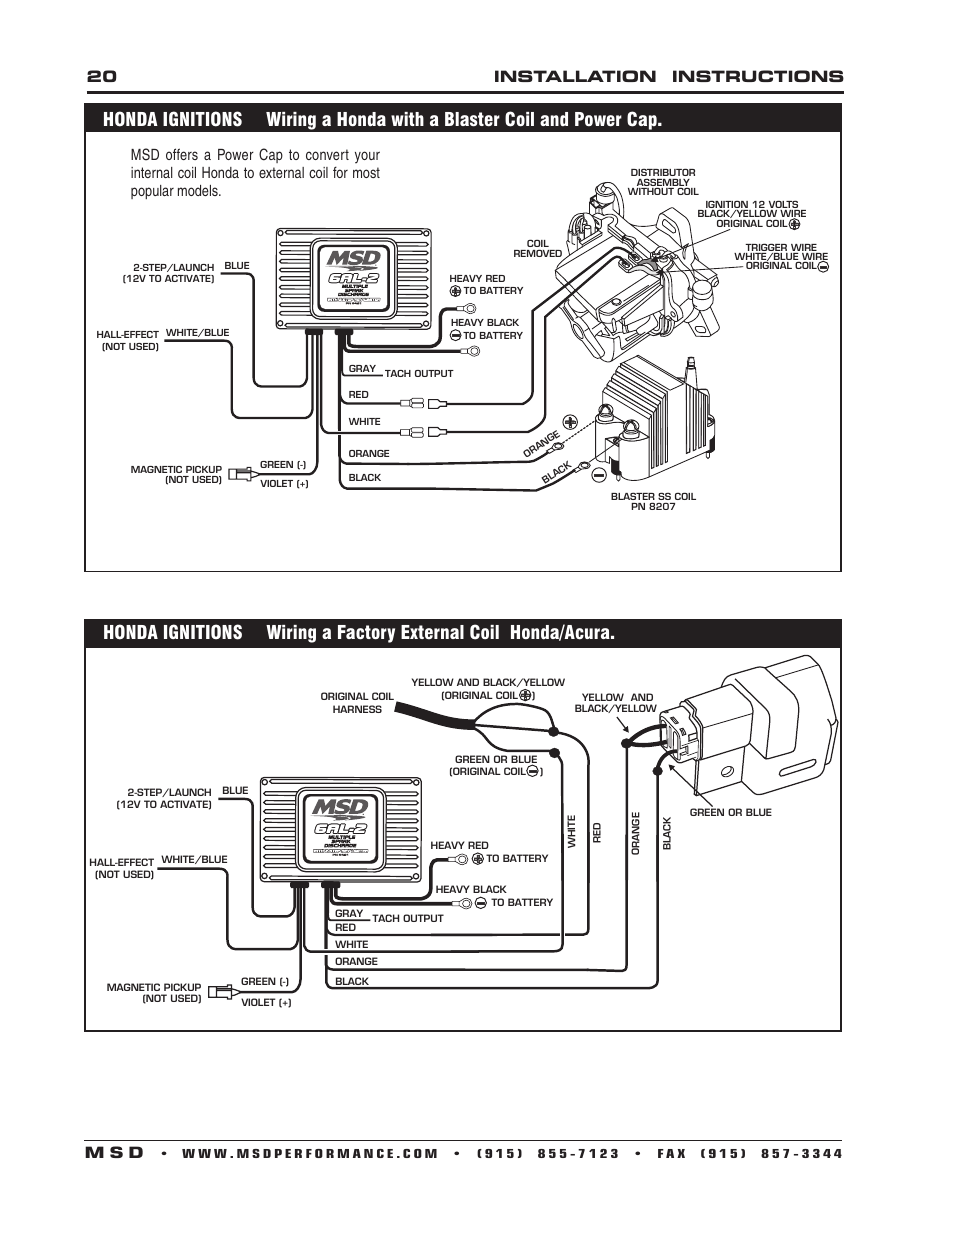 hight resolution of 20 installation instructions m s d msd 6421 6al 2 ignition control installation user manual page 20 28